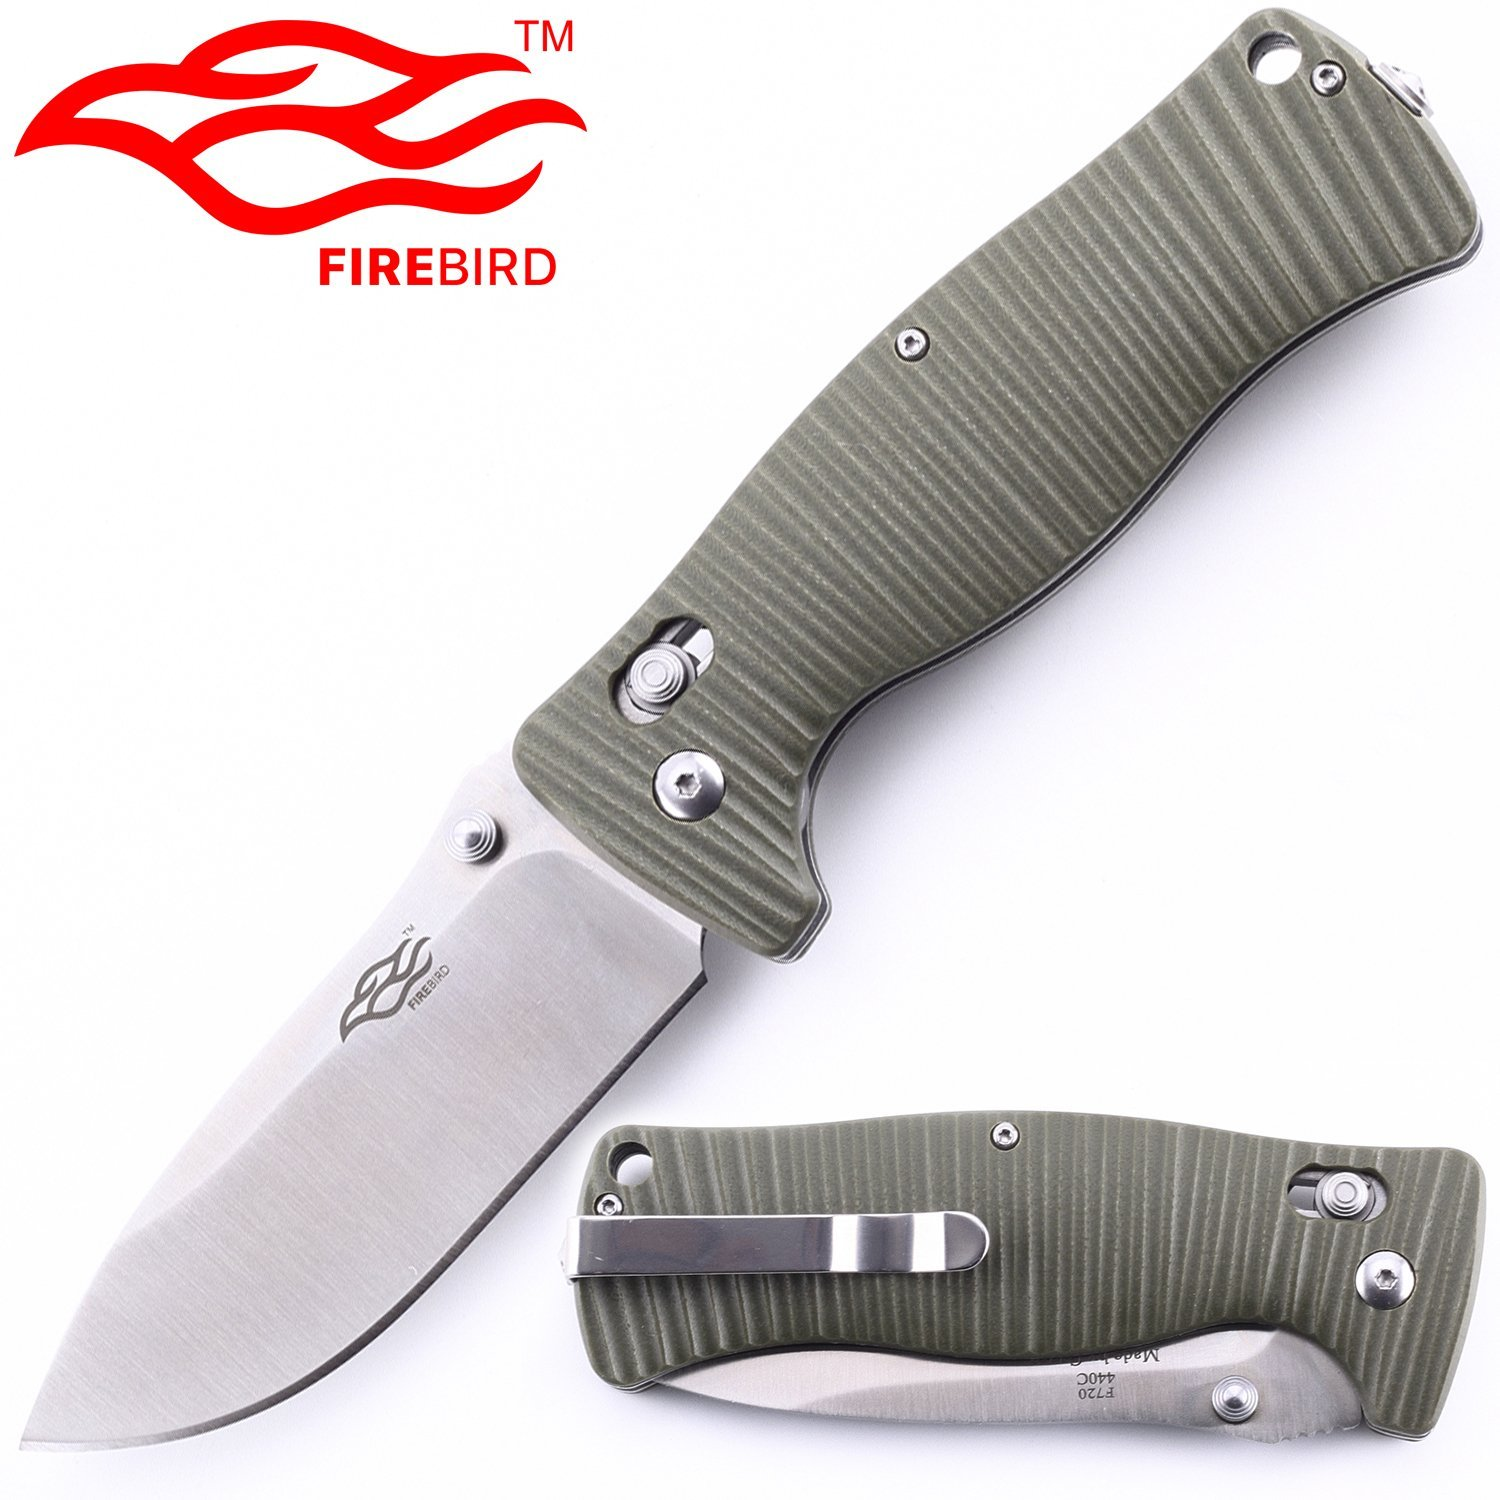 Folding Knife F720 Classic Small Stainless Steel 440C Blade 3.4in Pocket Knife with G10 Handle Axis Lock Clip Point & Straight Edge Lockback Knife for Hunting Camping OutdoorSurvival